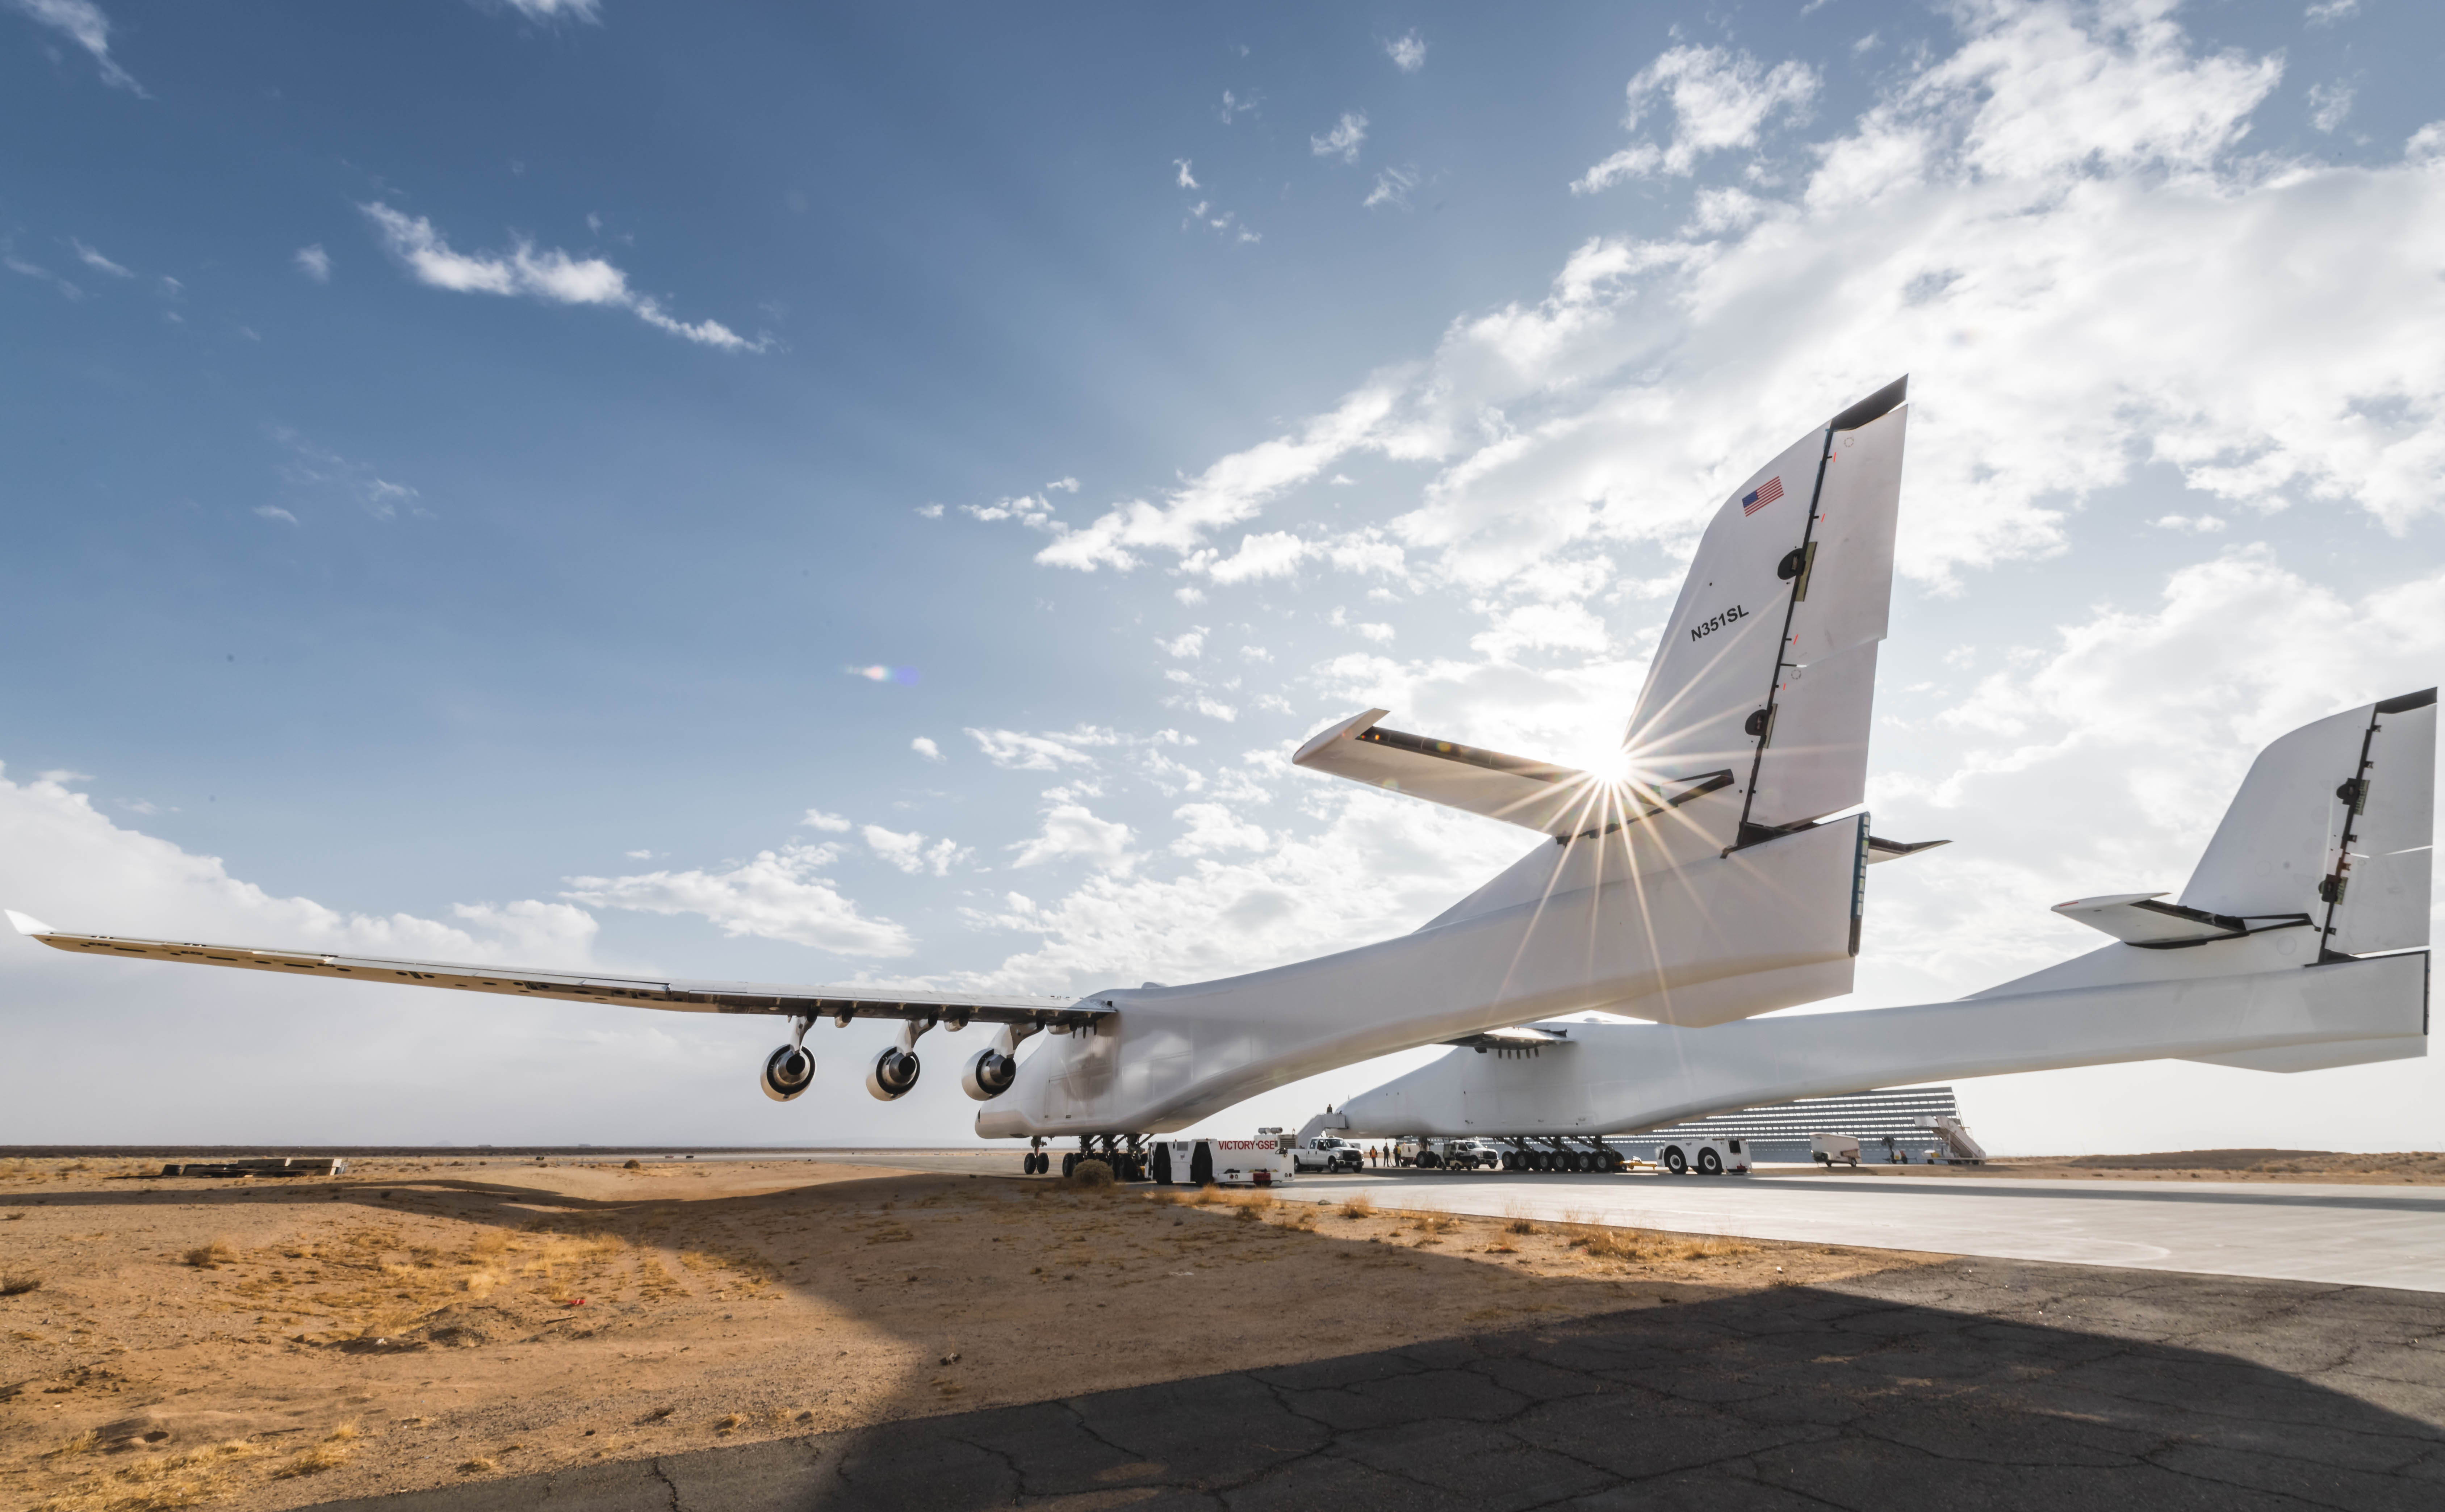 The world's largest aircraft may finally take off this summer